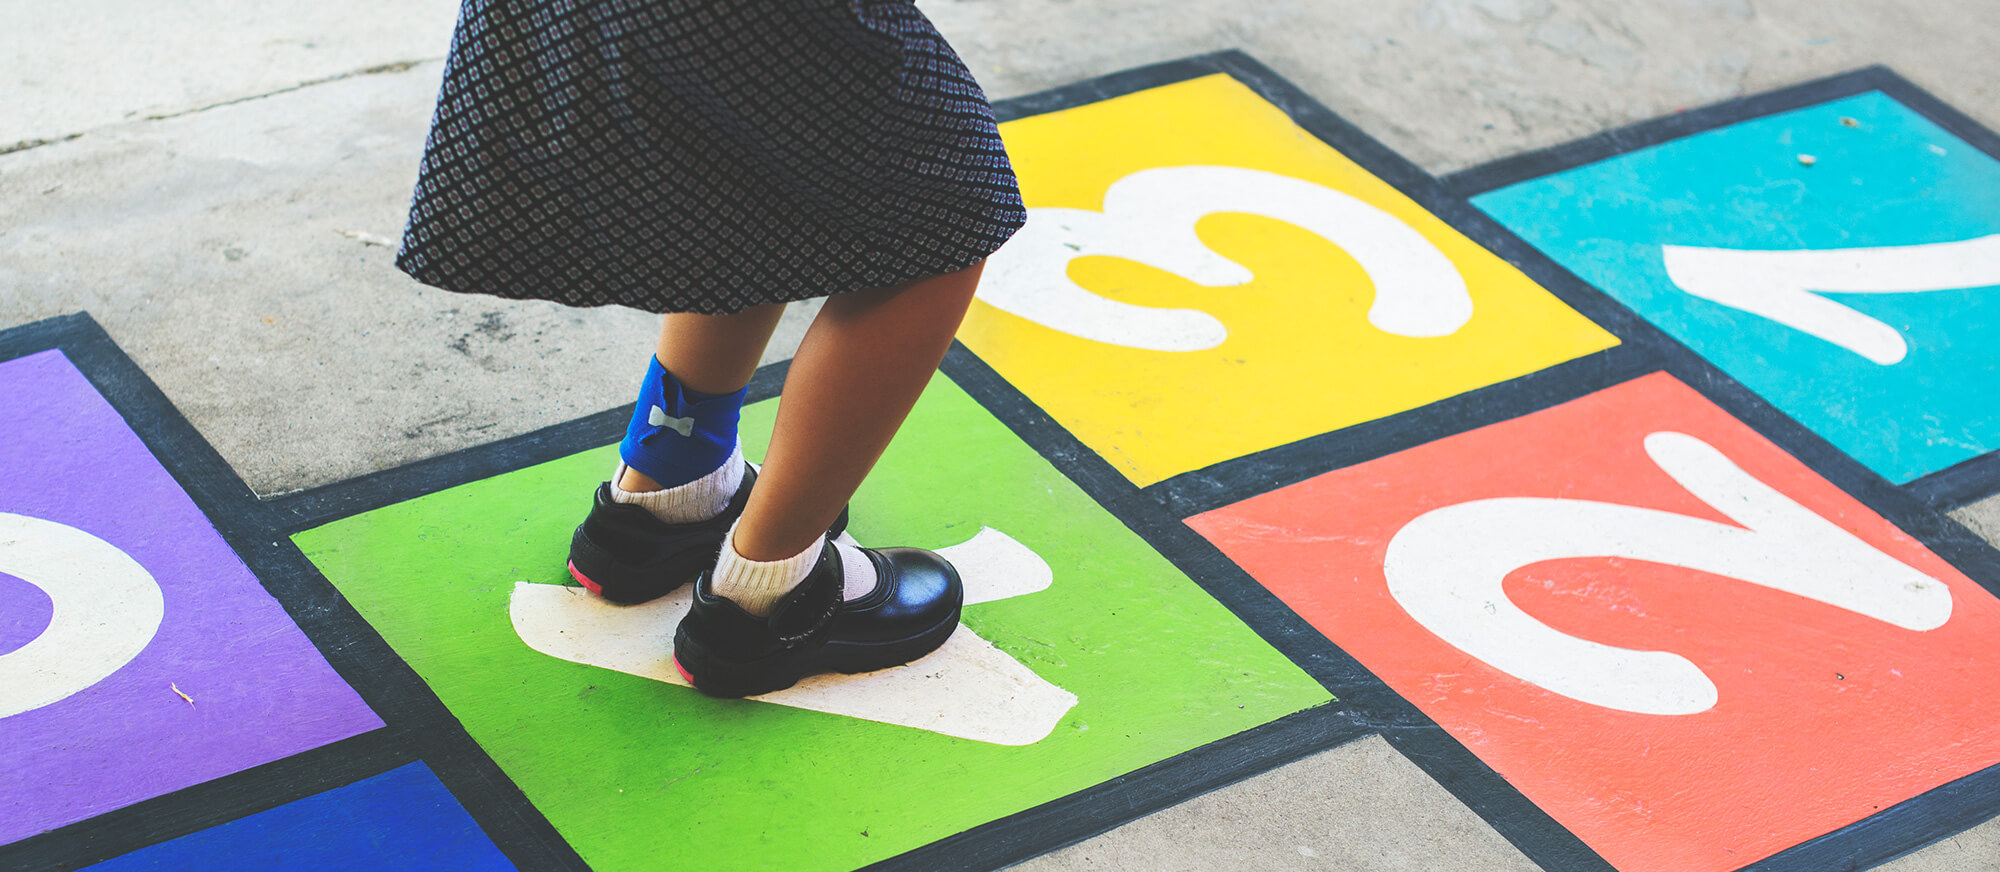 young-girl-playing-hopscotch-PUSTBA3